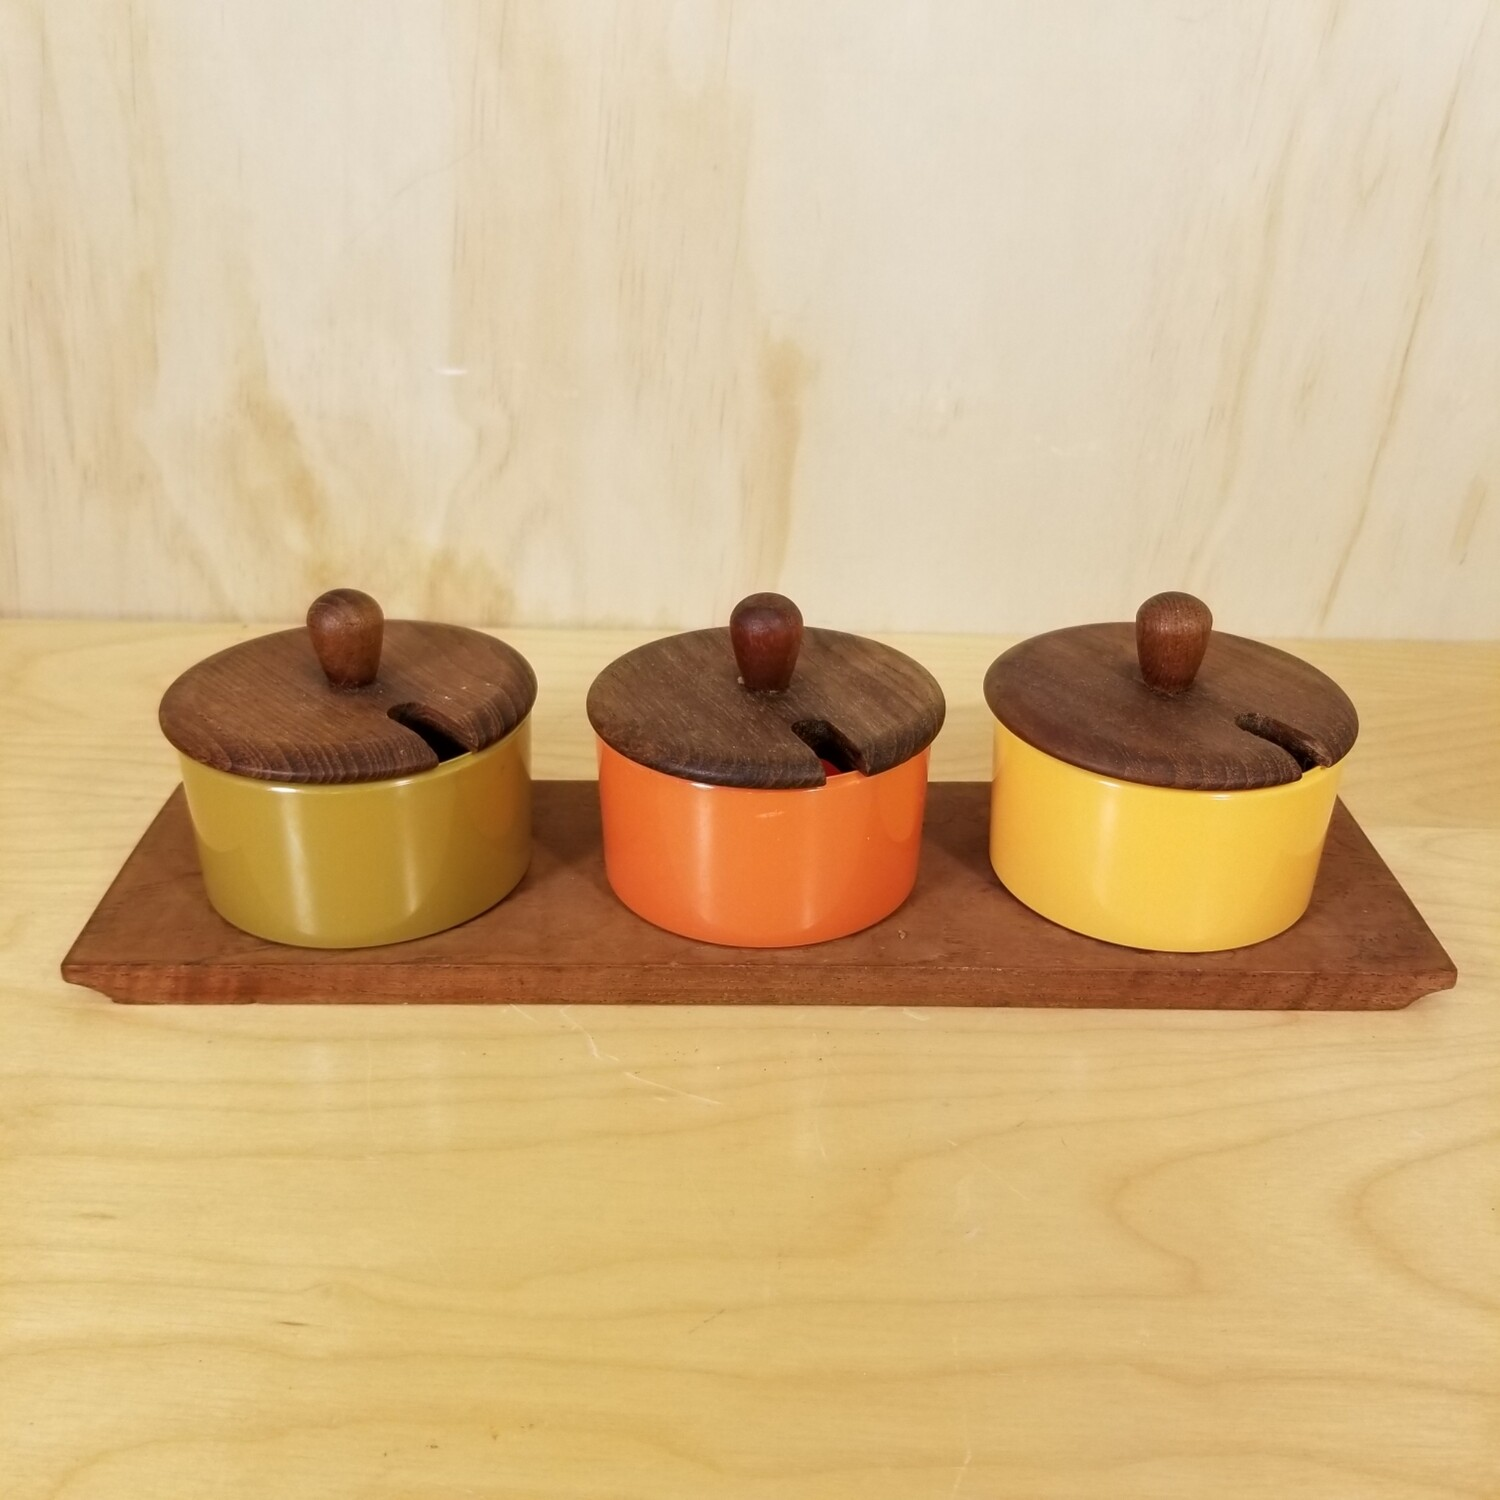 Teak Serving Tray with Containers